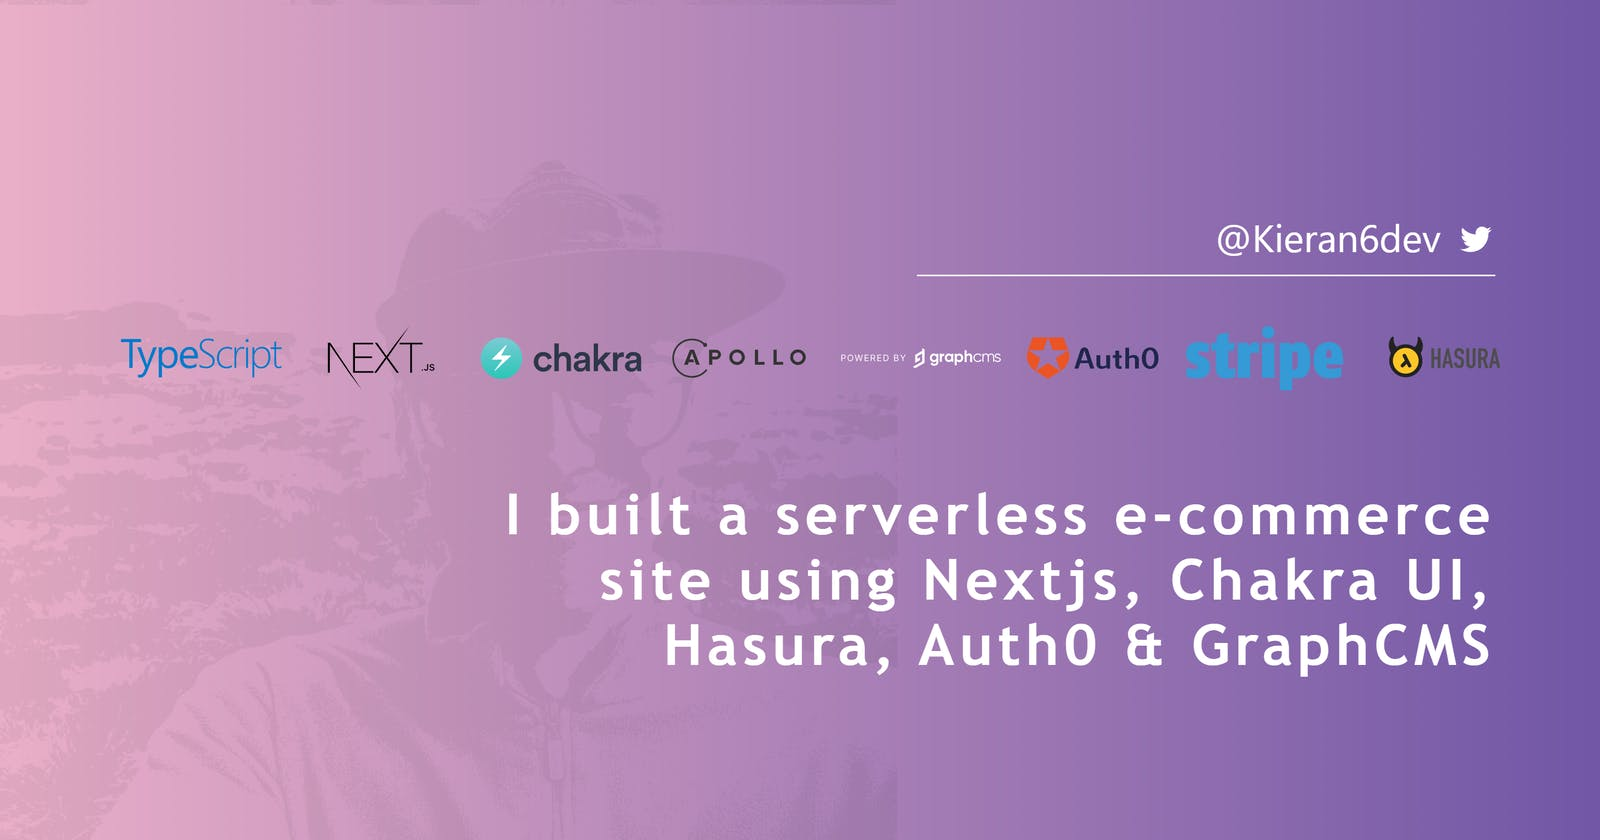 I built a full stack serverless e-commerce site with Next.js.  Here's an honest review of what I learned and how it might help you